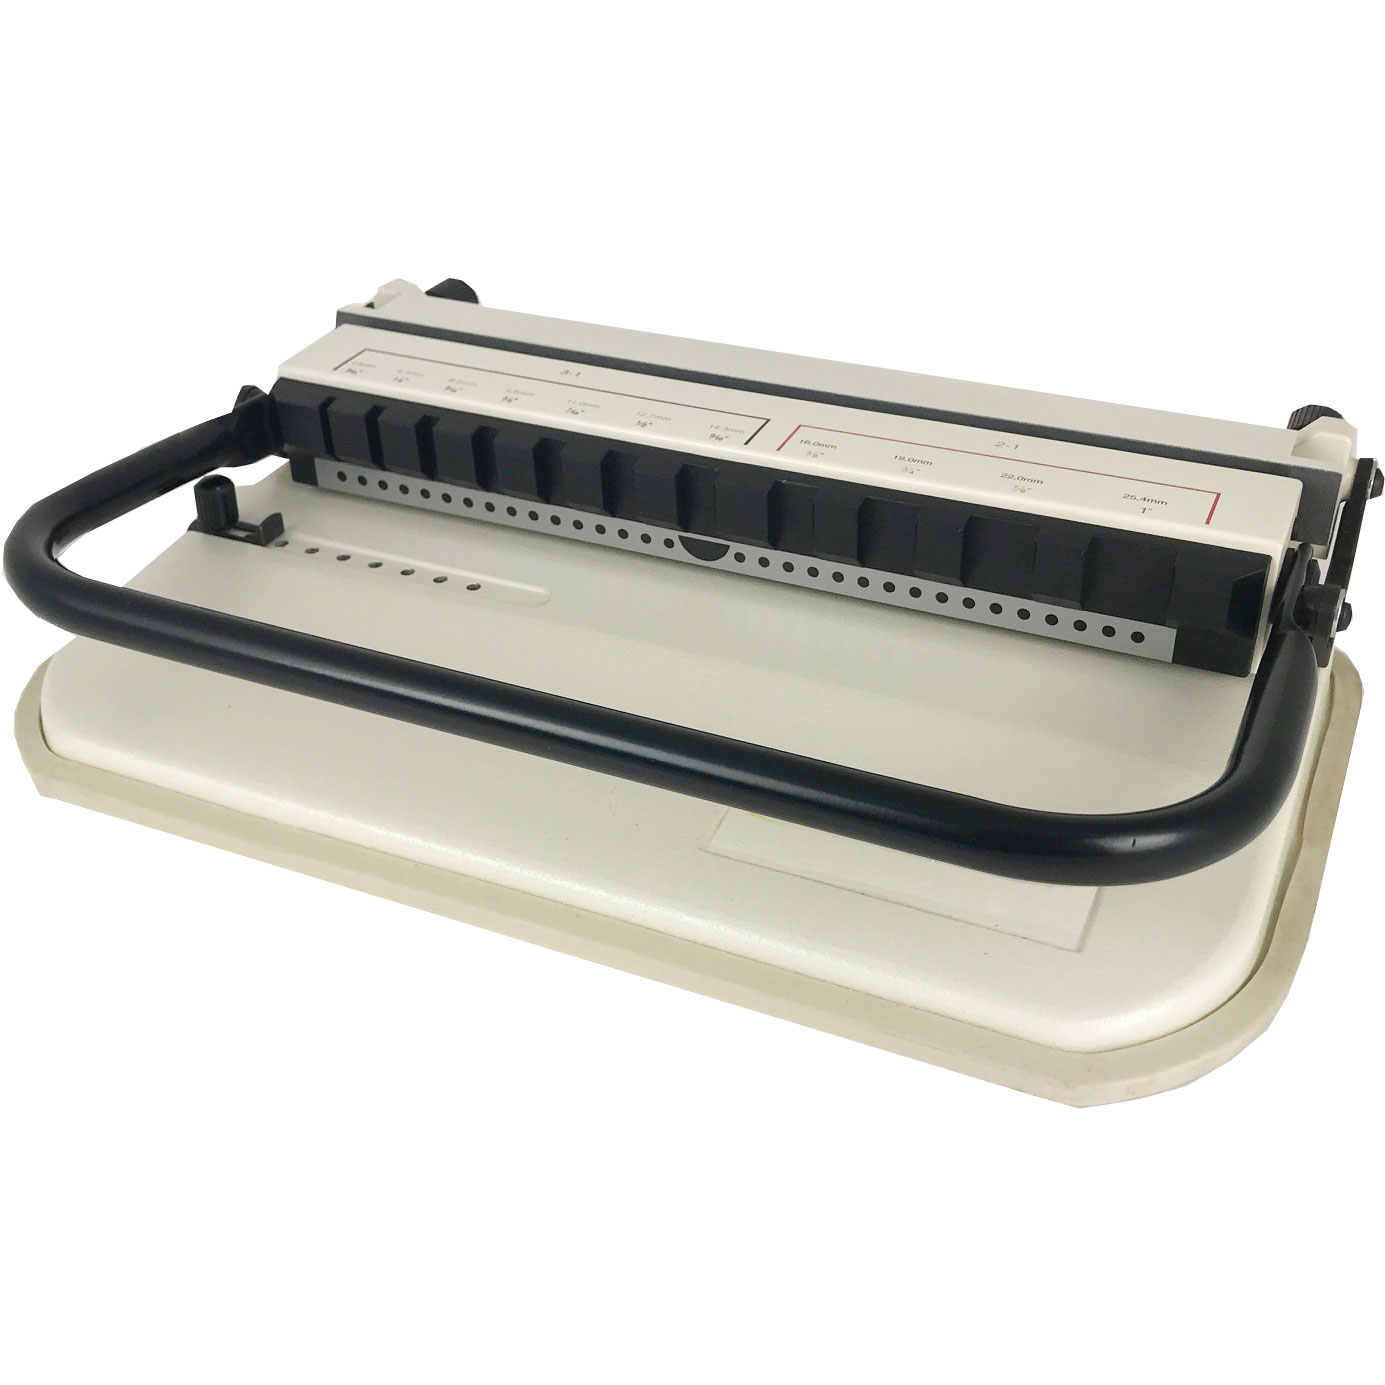 ELMPRO PB32-CAL A4 Calendar Wire Binding Machine